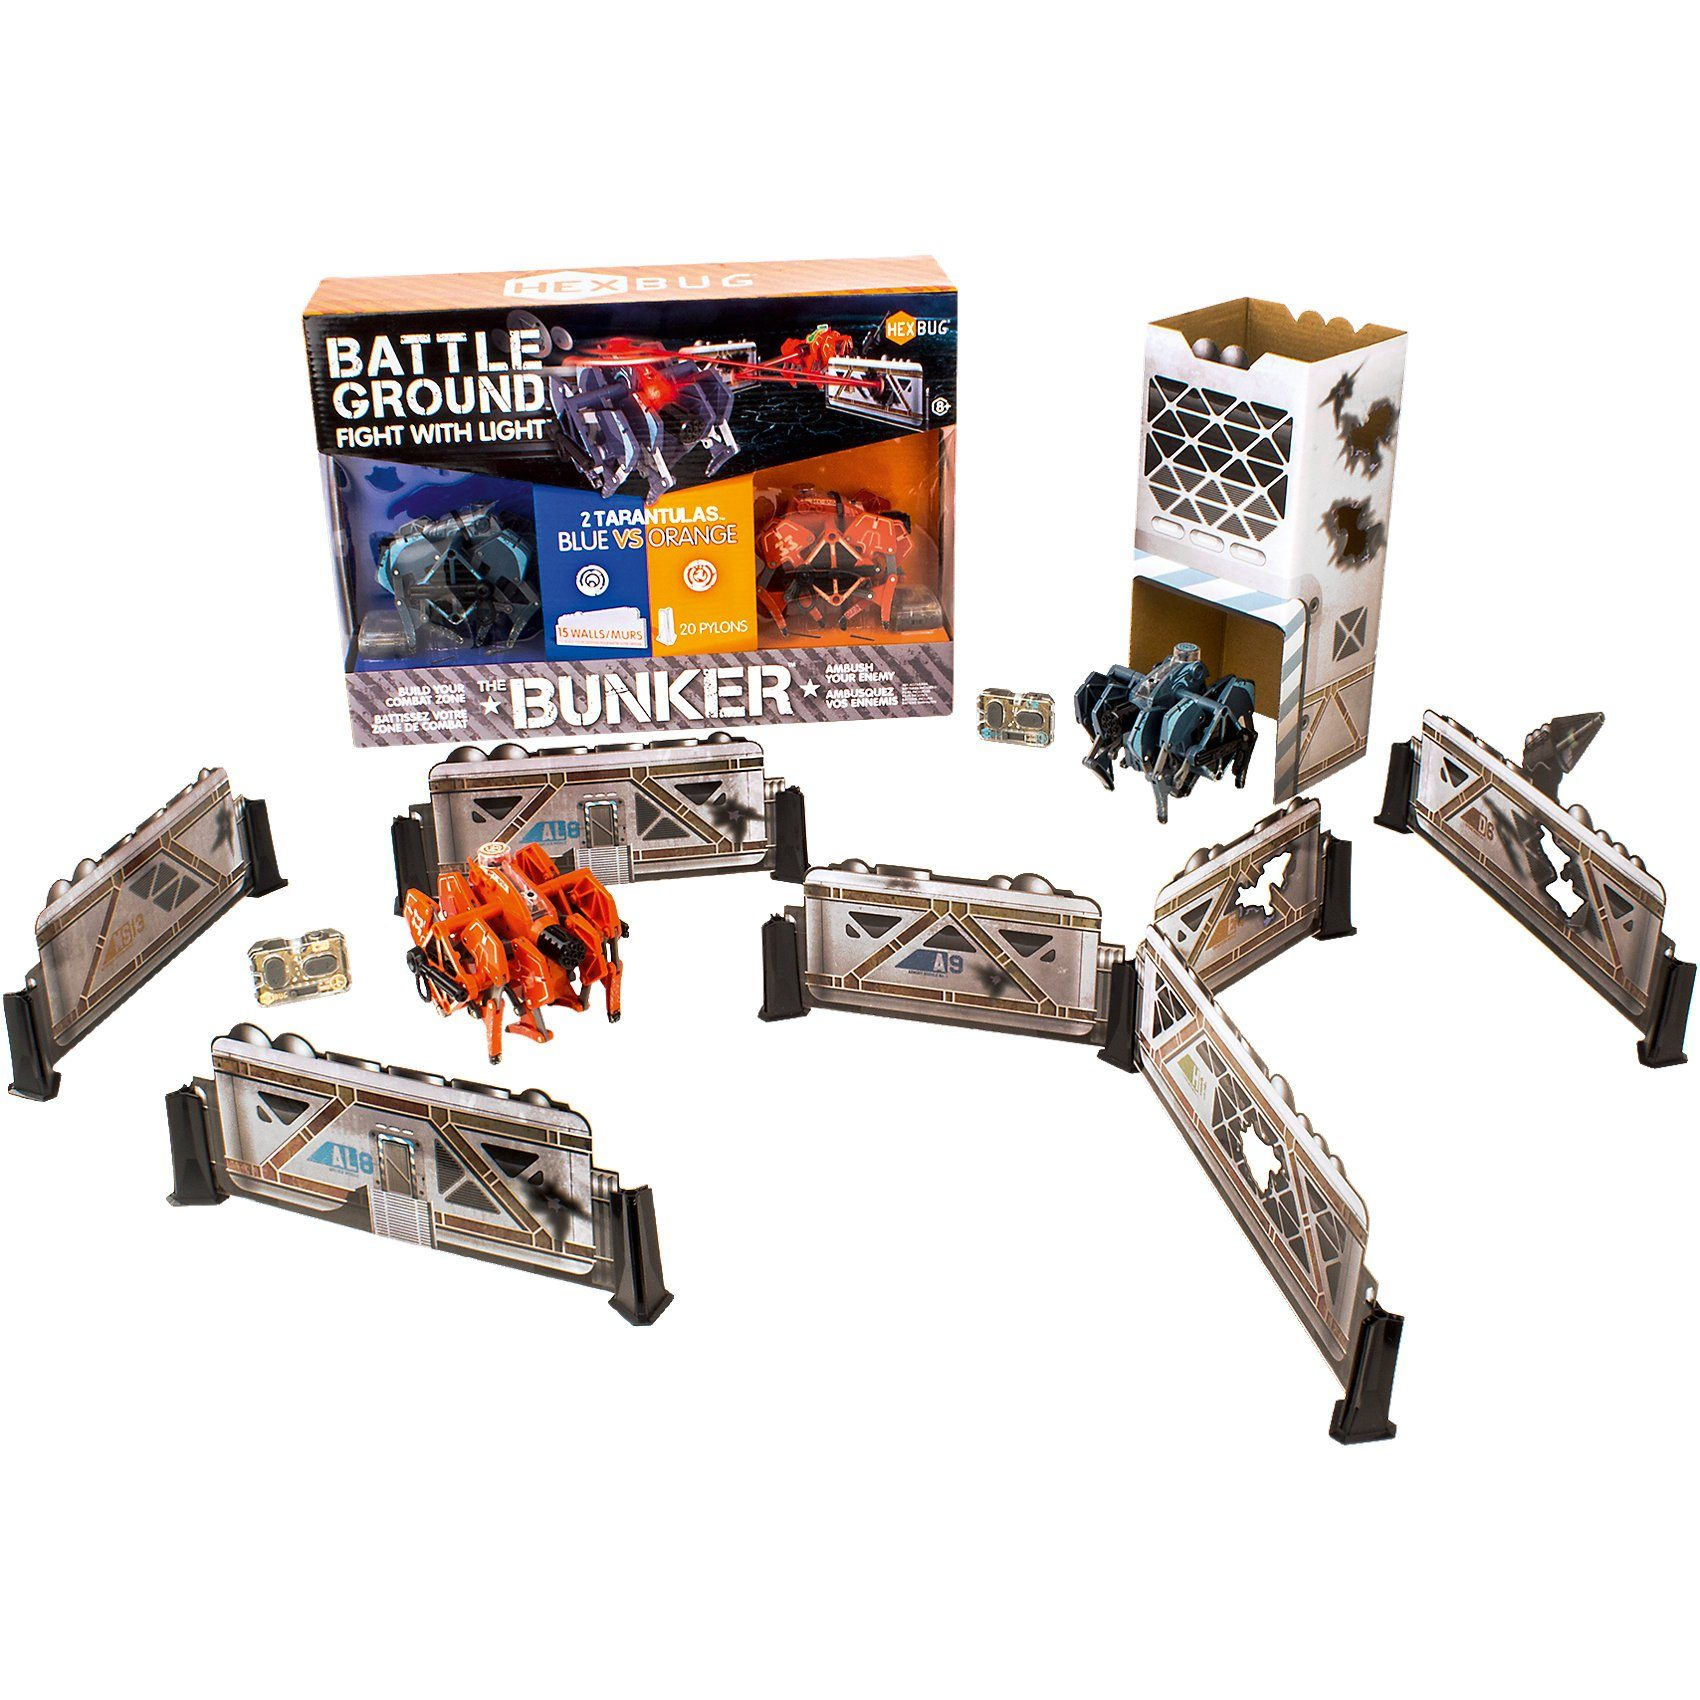 Hexbug Battle Ground Bunker